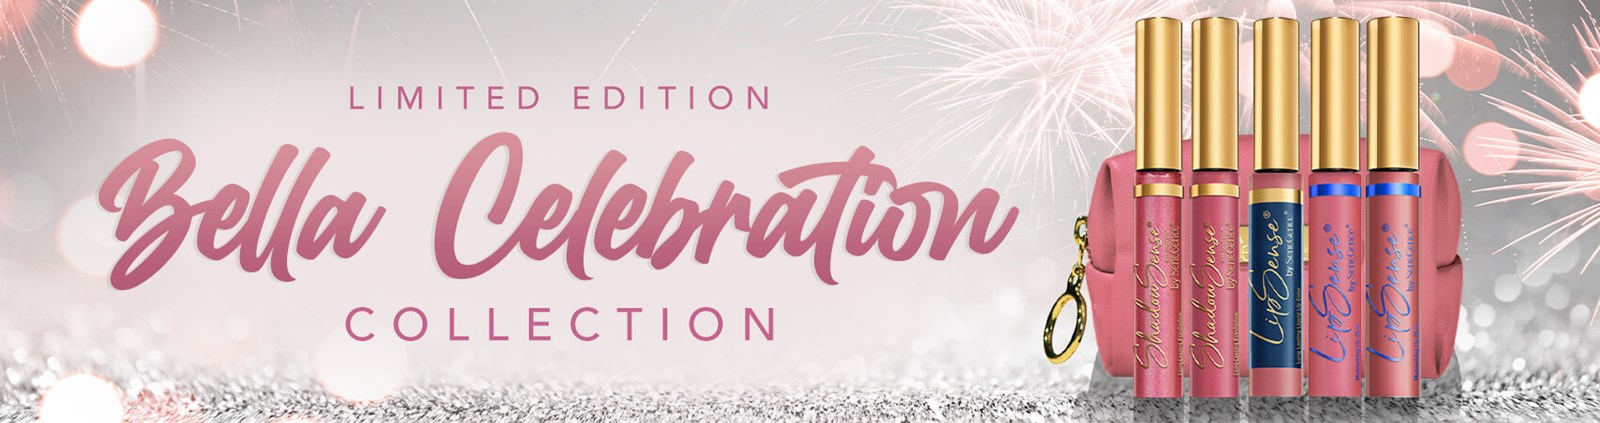 Bella Celebration Collection – Limited Edition